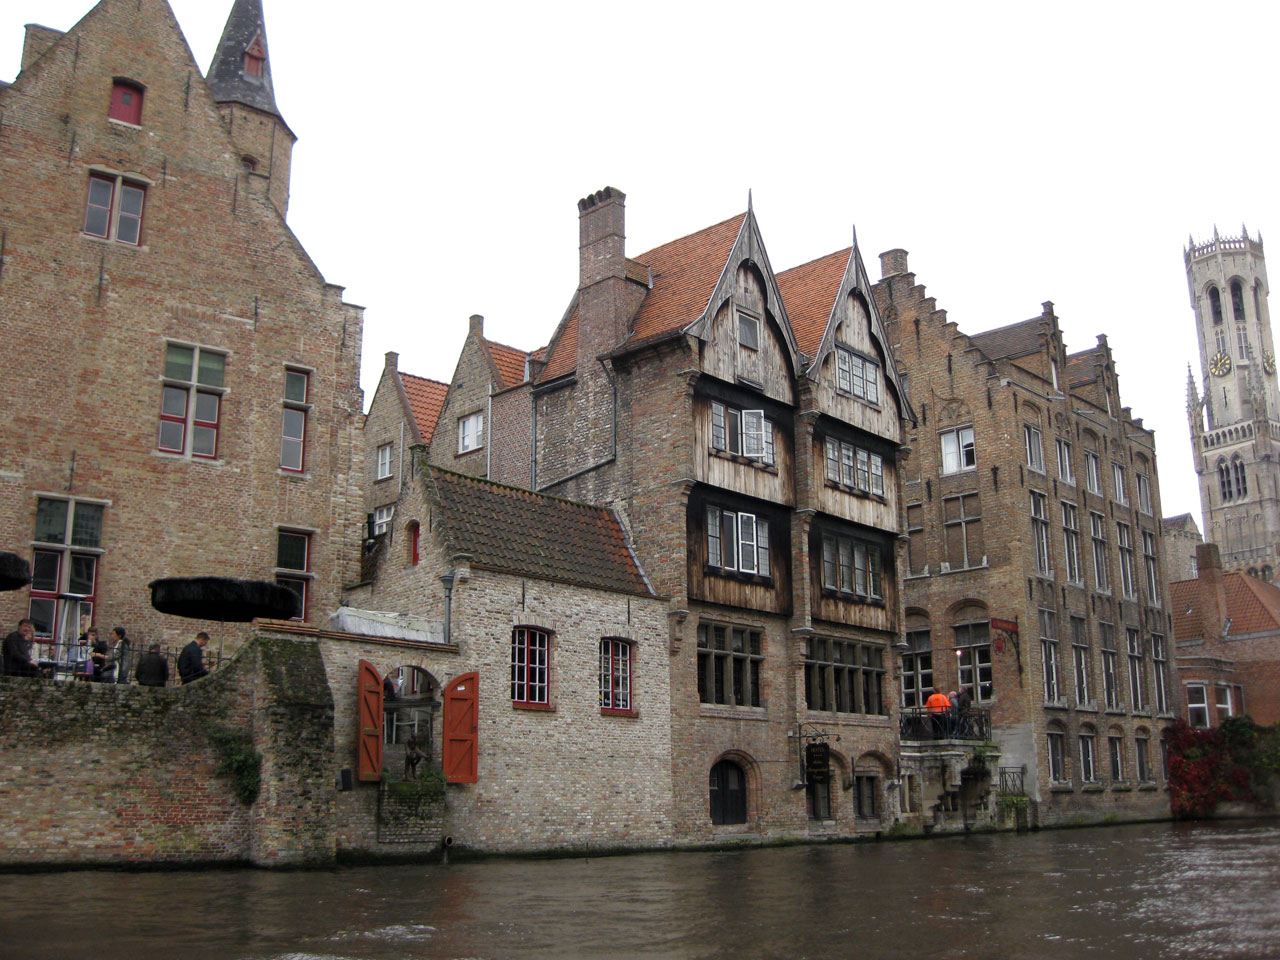 Canal side buildings in Bruges, Belgium